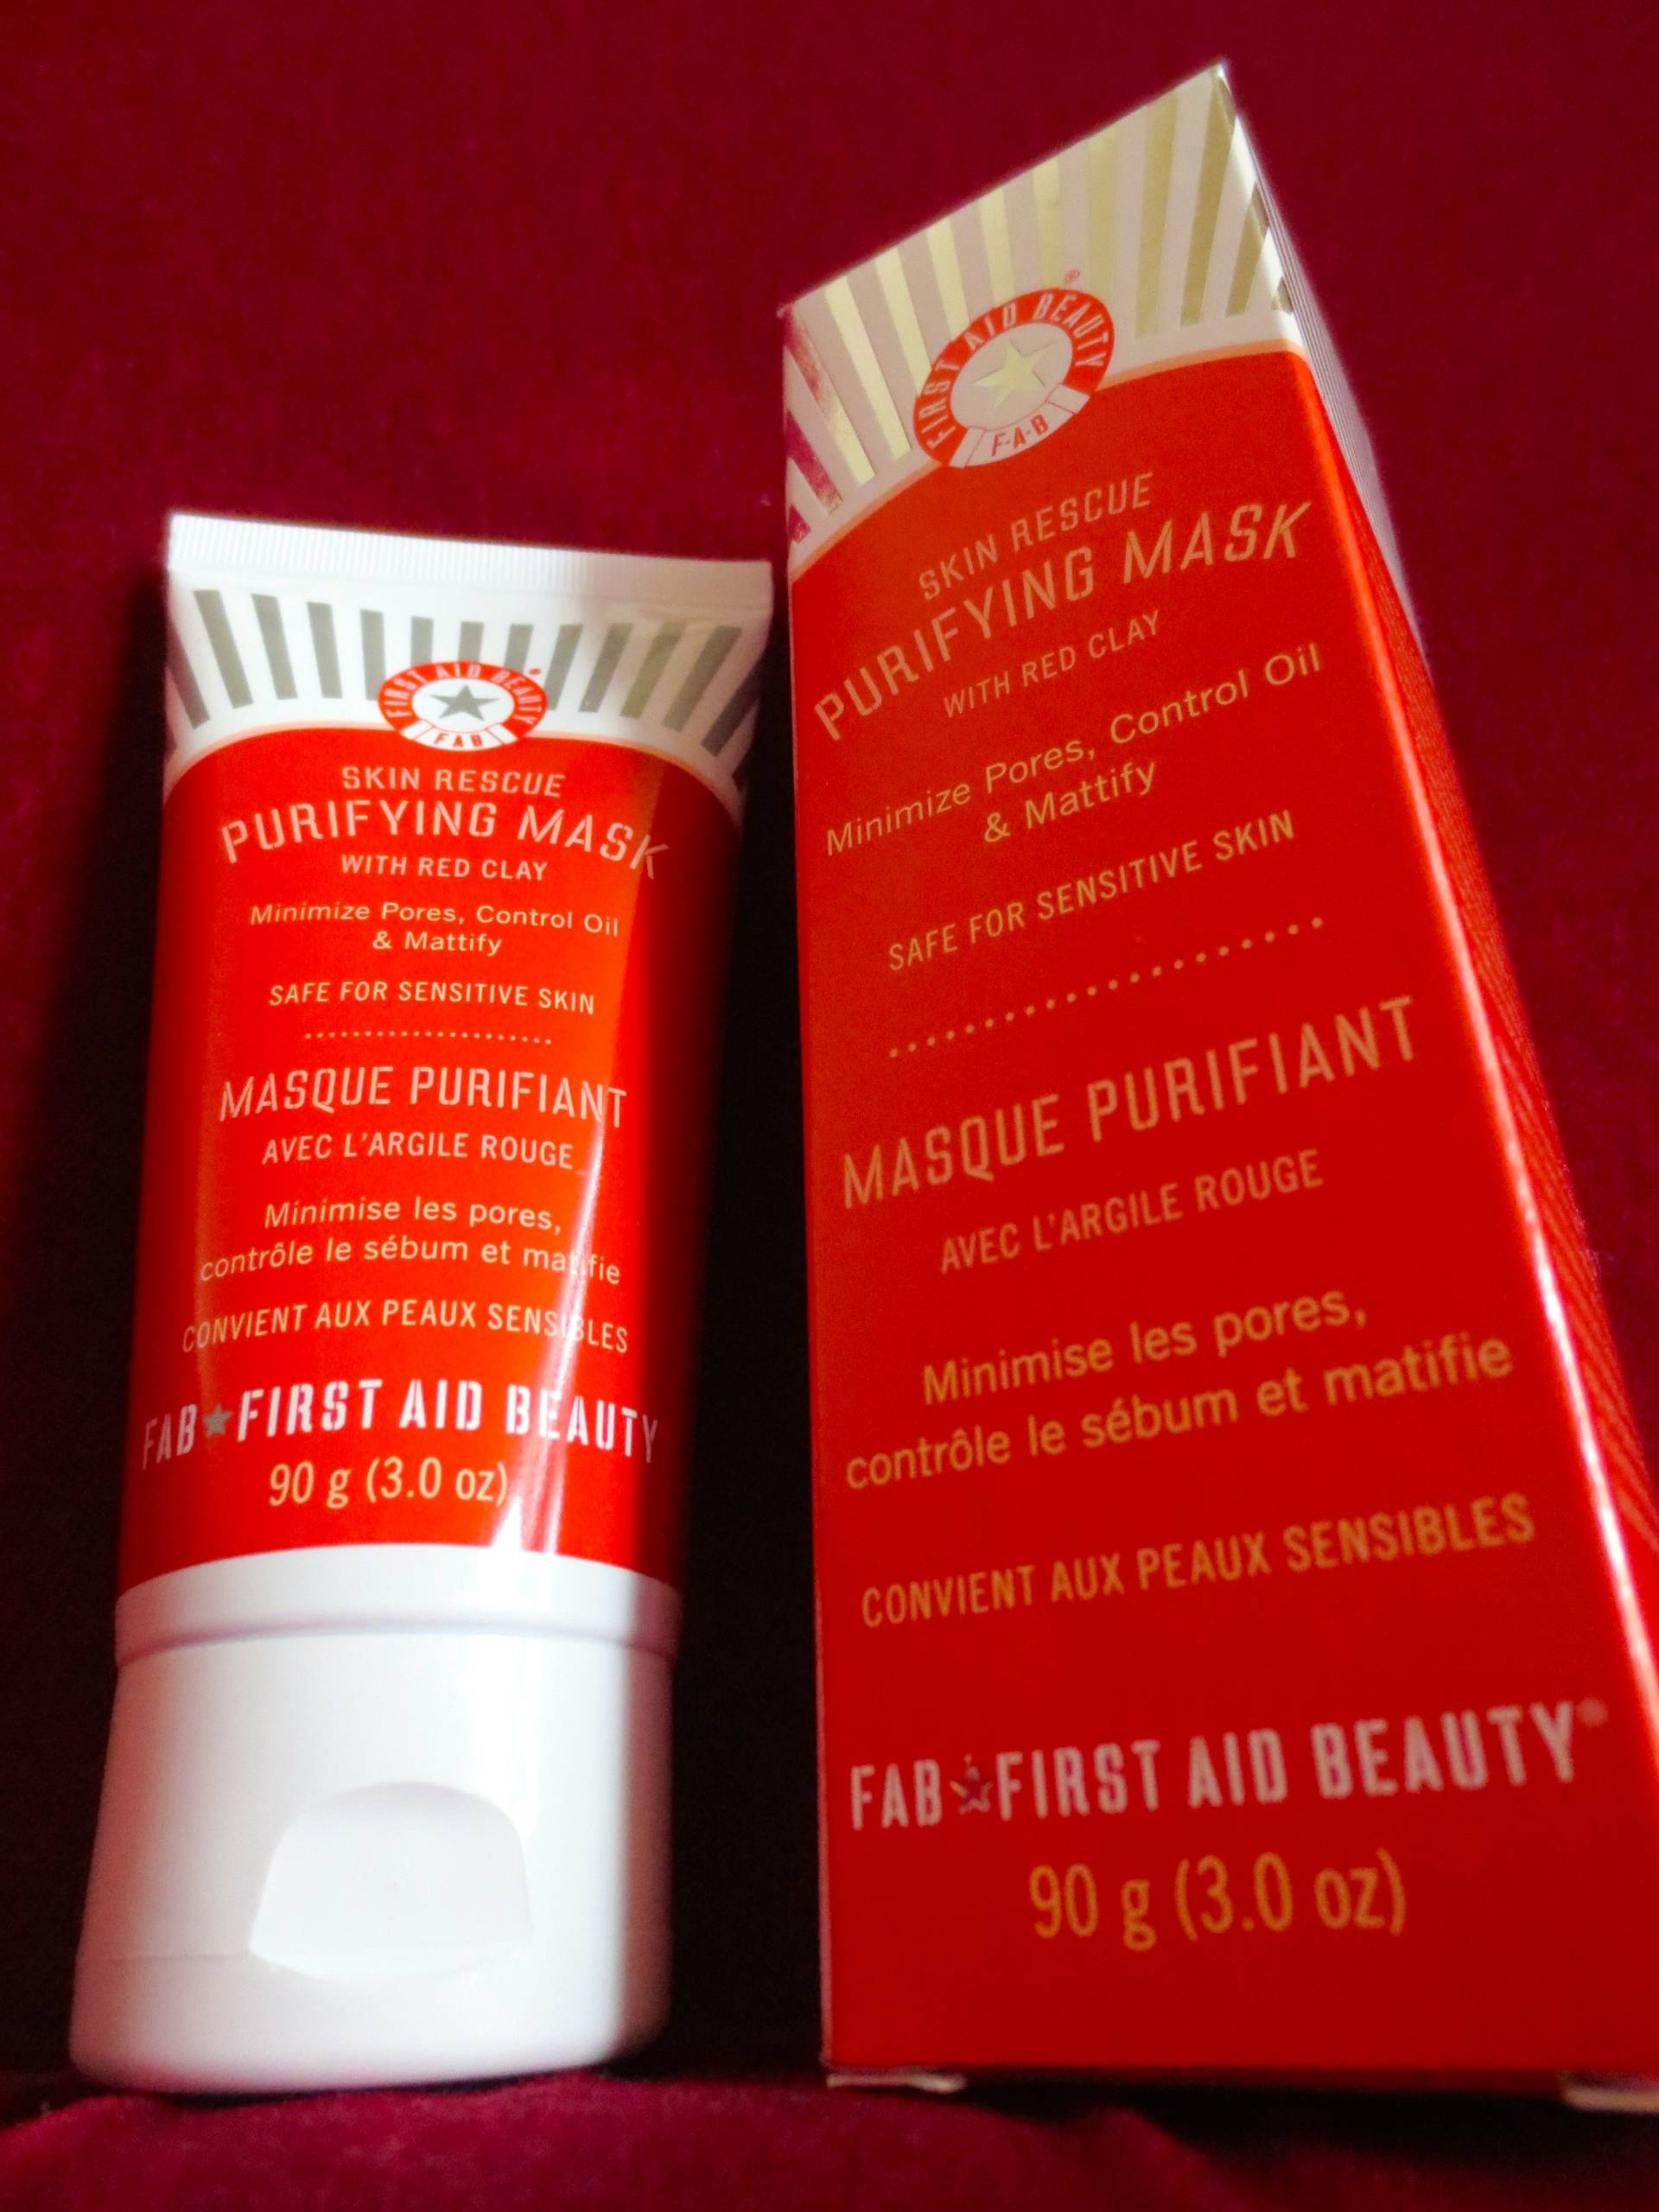 FAB skin rescue purifying mask with red clay